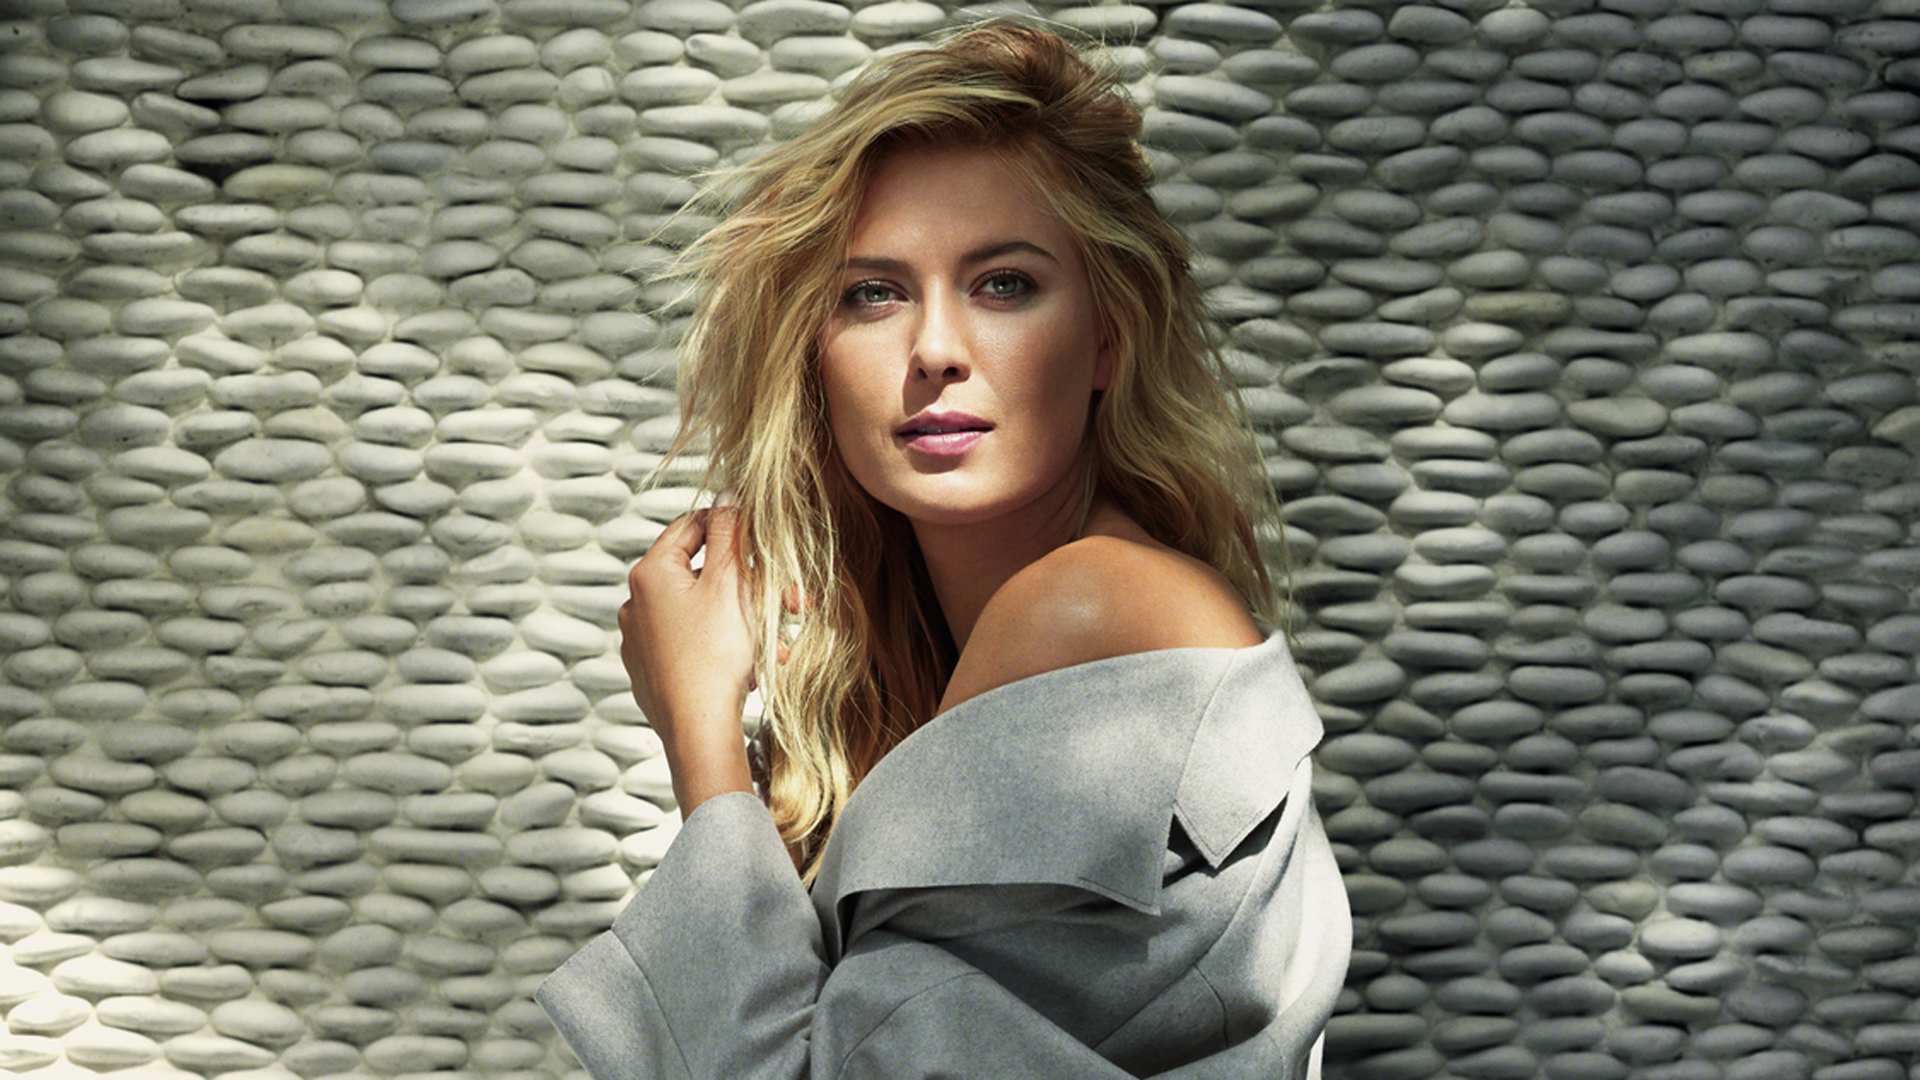 Maria Sharapova Wallpapers JMI4O4M   4USkY 1920x1080